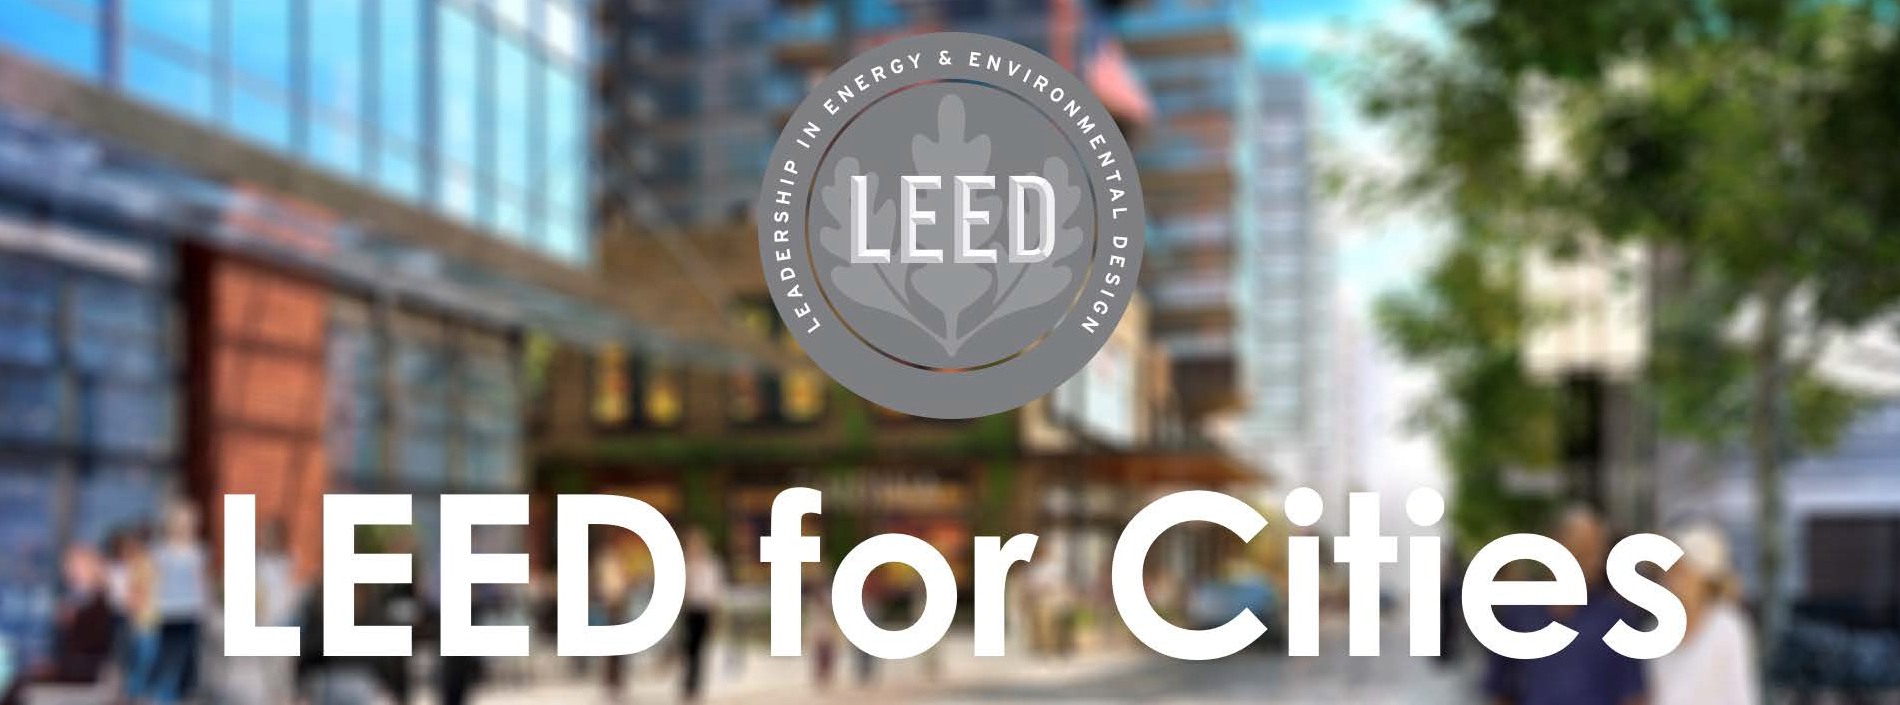 LEED For Cities Banner